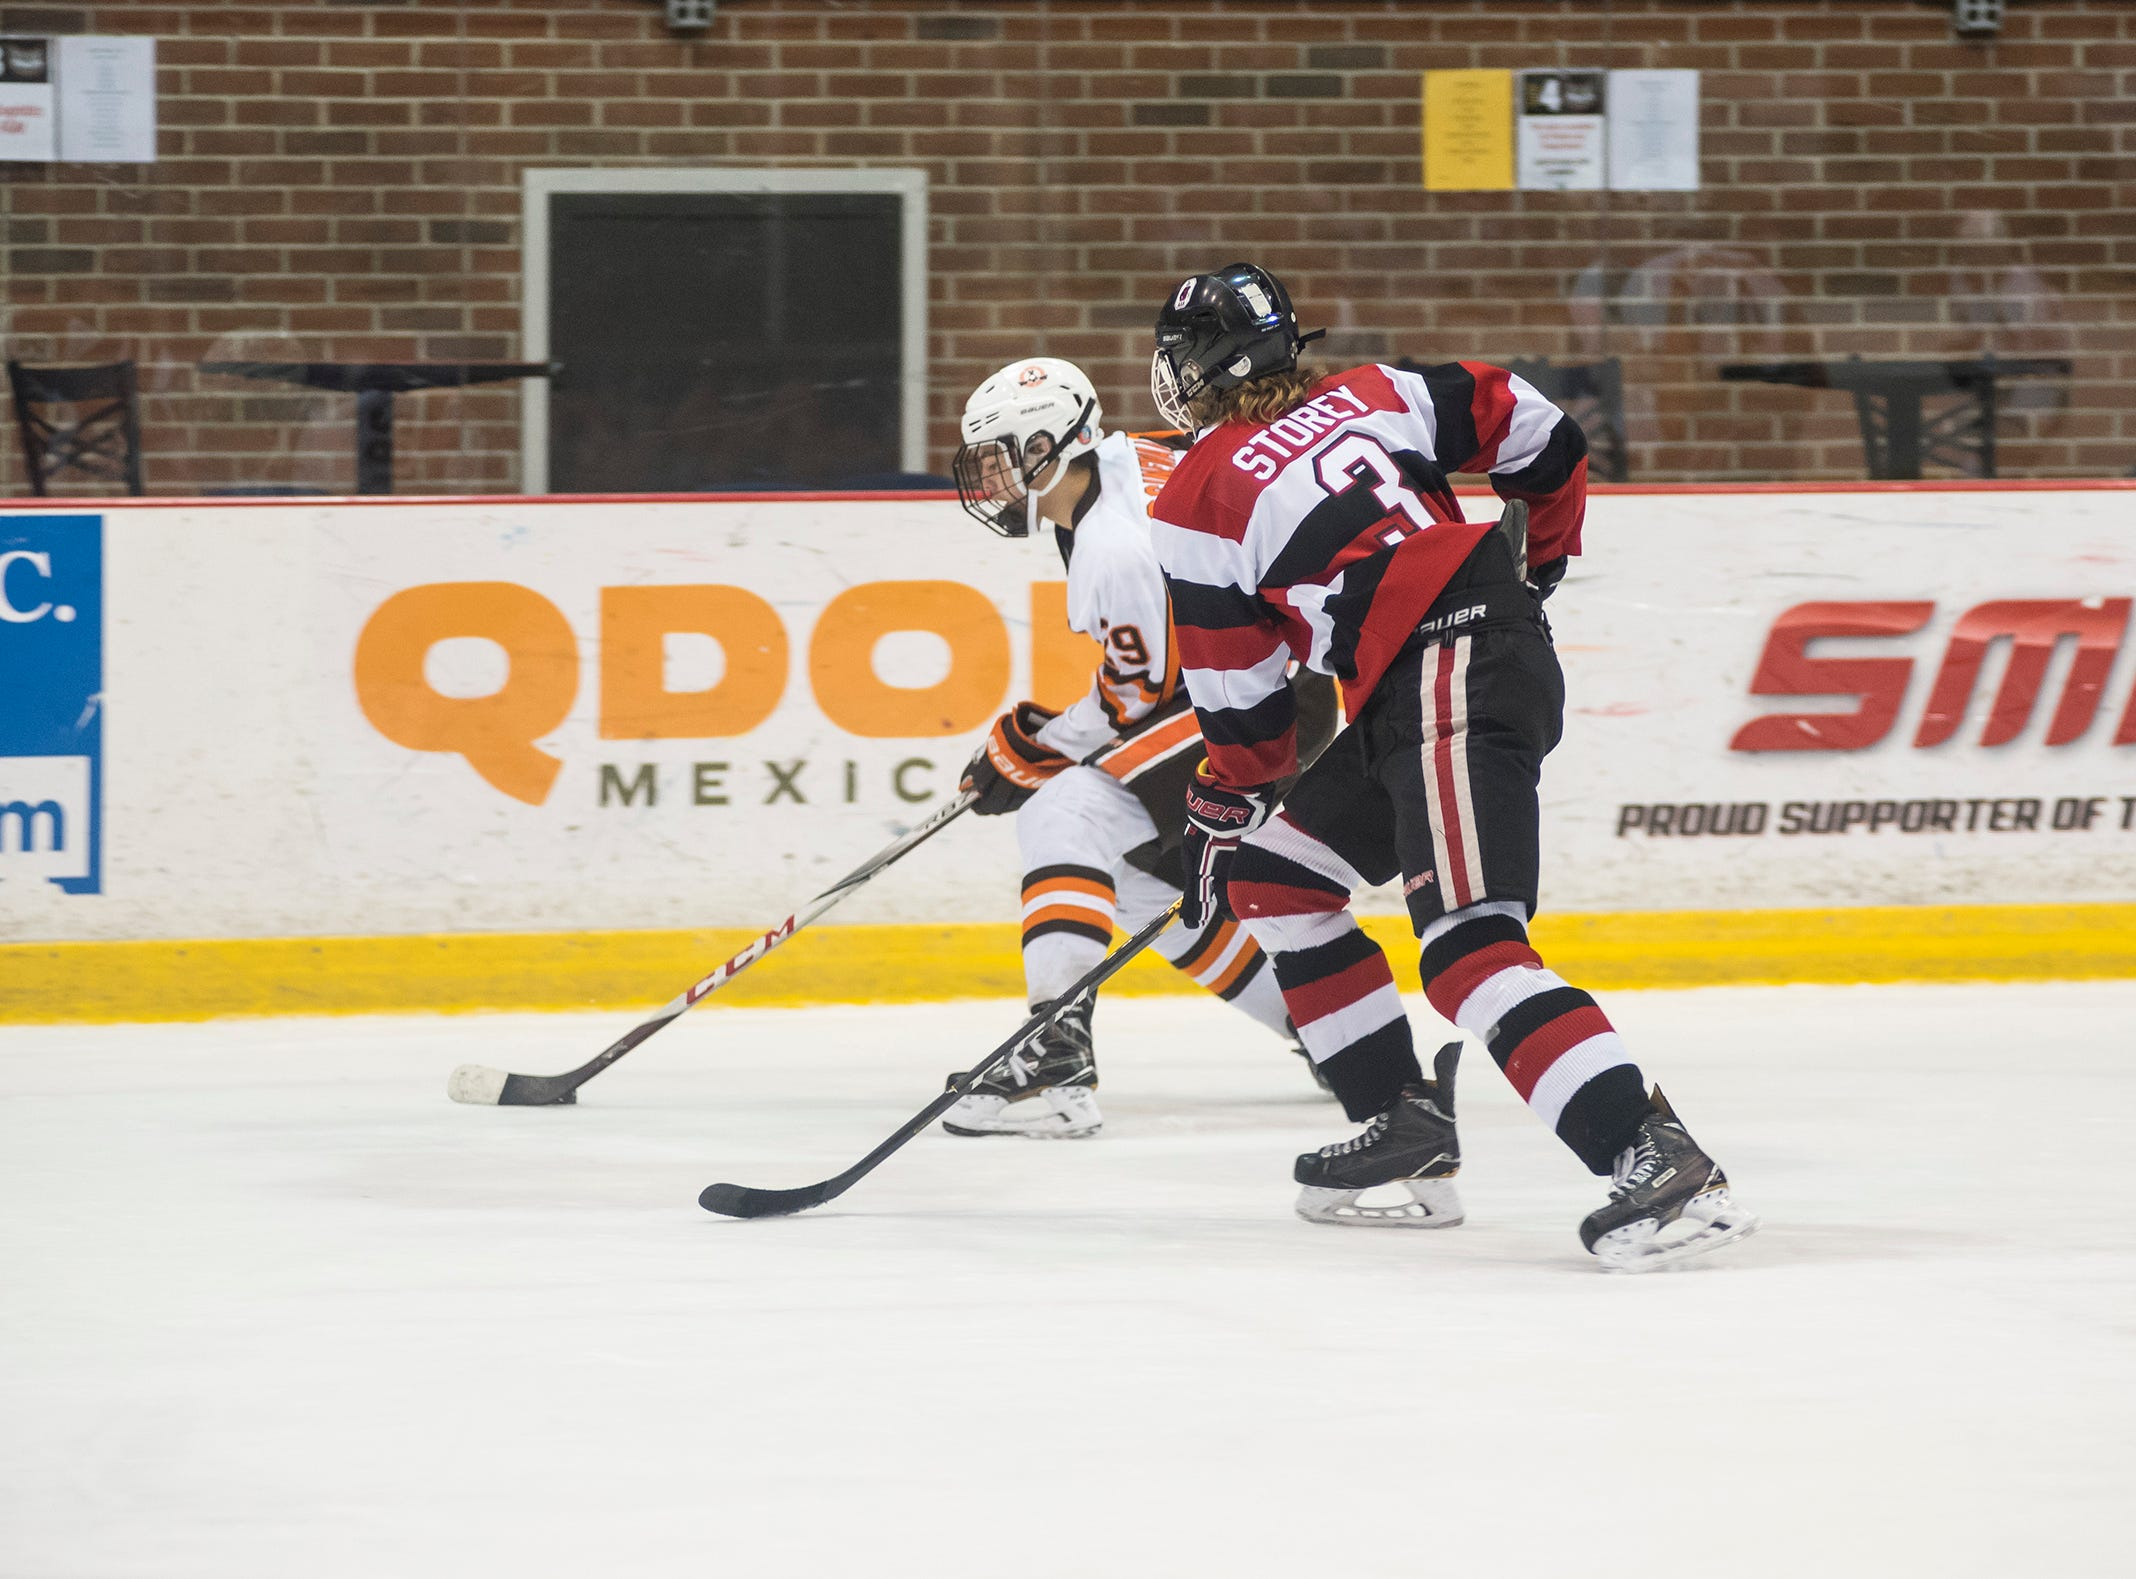 Ottawa Jr. 67s defenseman Will Storey (3) skates after Detroit Compuware forward Samuel Assinewei during their BAAA-B Silver Stick Finals match Saturday, Jan. 5, 2019 at McMorran Arena.